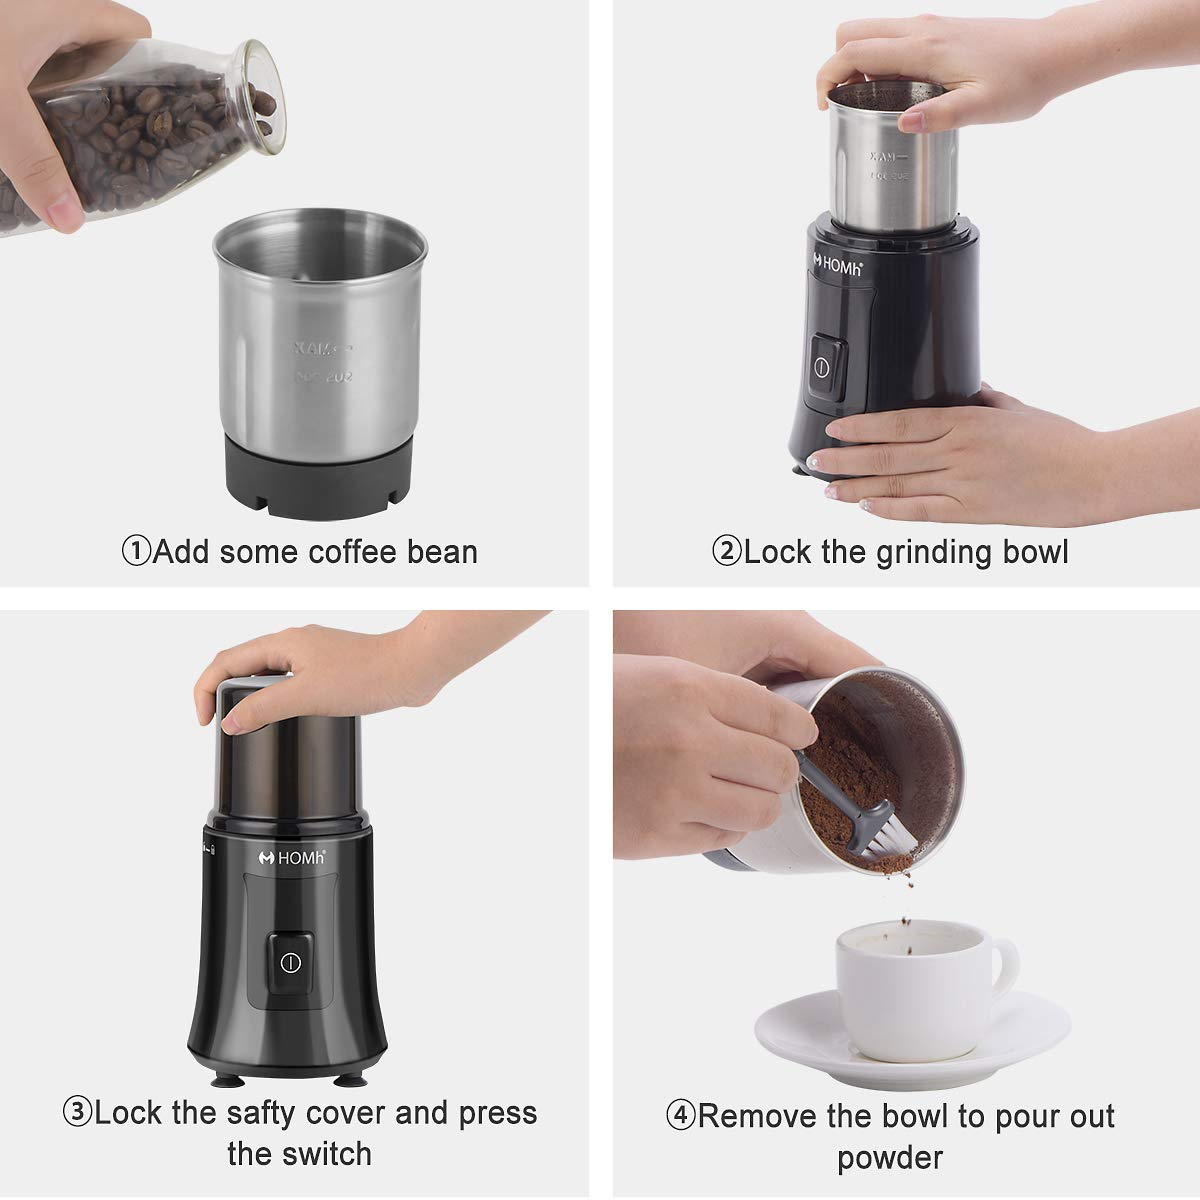 HOMh-Coffee-Grinder-200W-120g-Capacity-Removable-Bowl-with-Stainless-Steel-Blade-Electric-Grinder-for-Coffee-Bean-Spice-Seed-Nut-Herb-Pepper